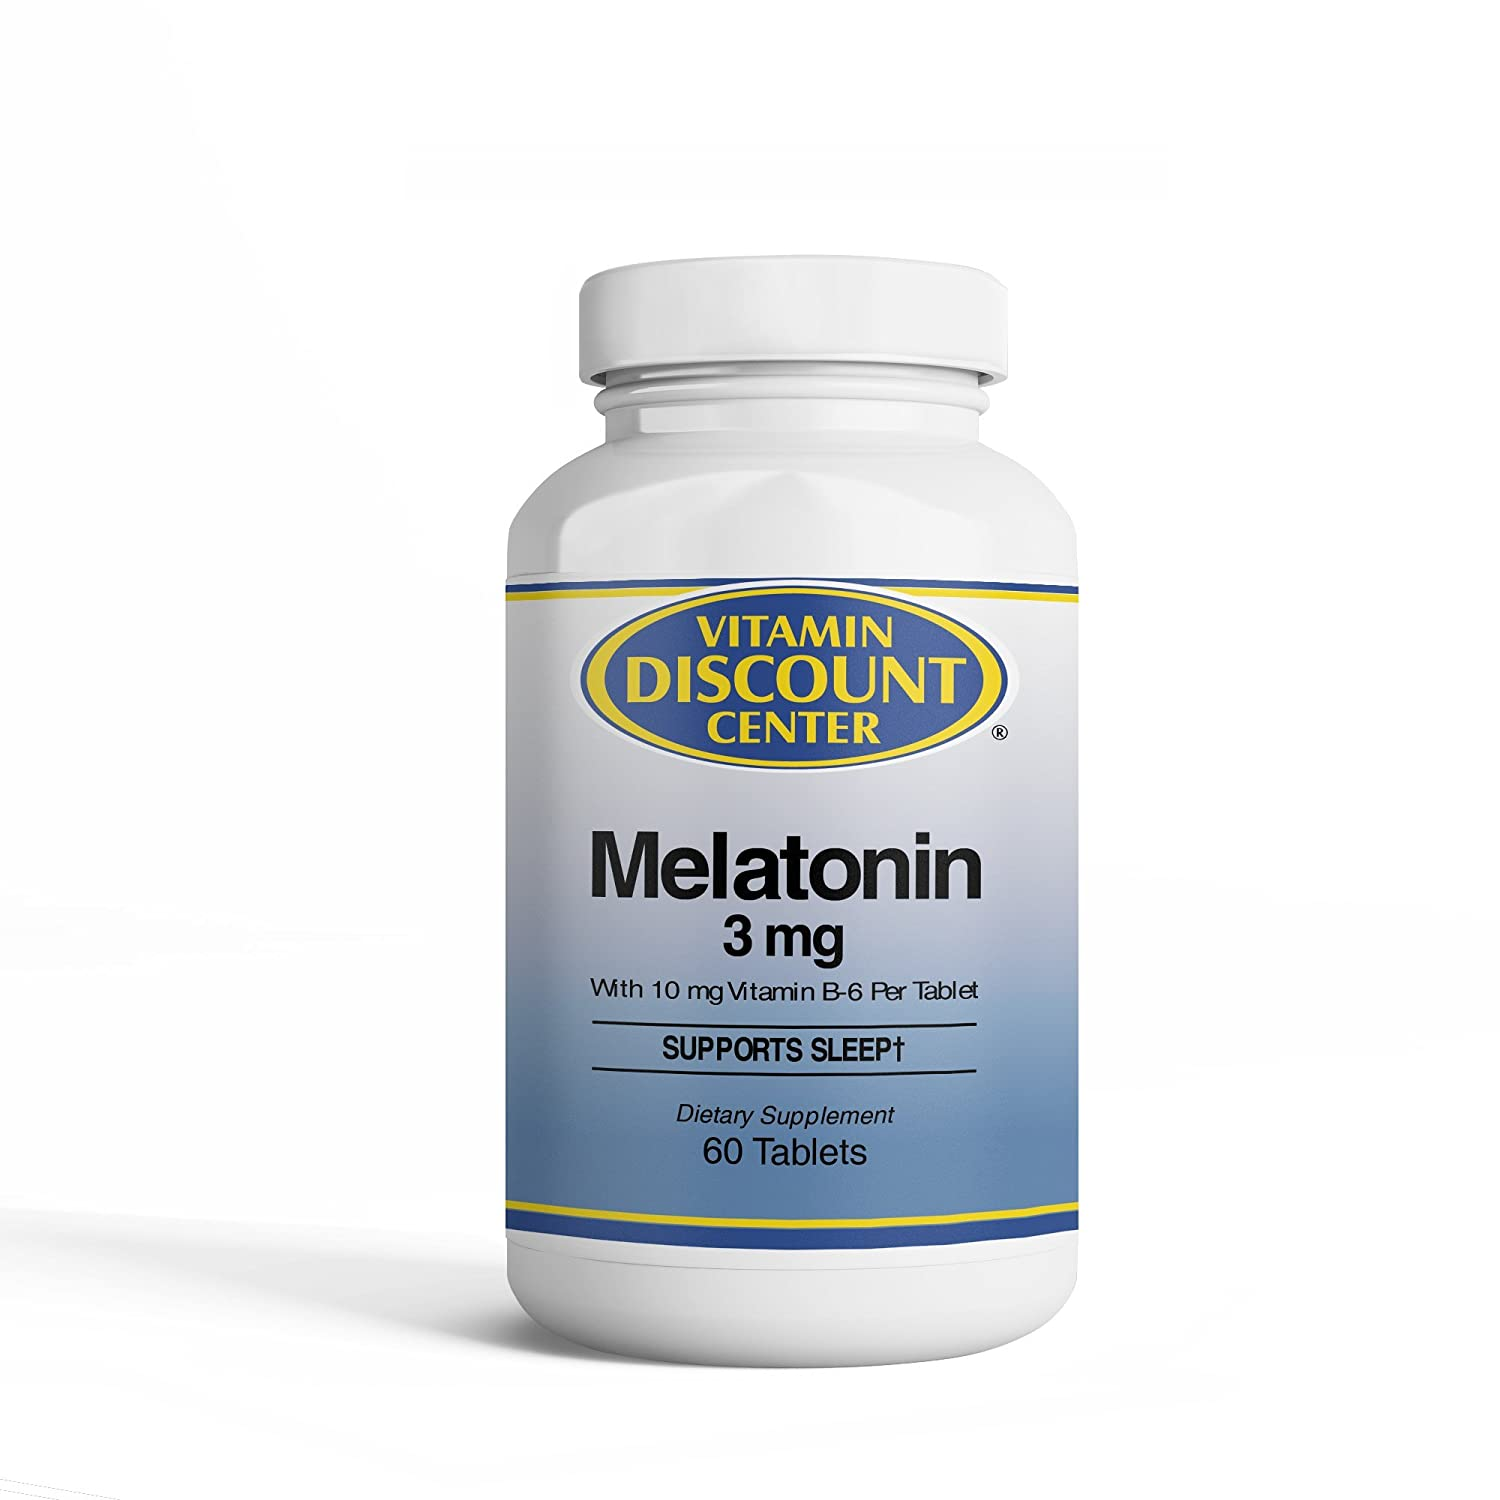 Amazon.com: Vitamin Discount Center Melatonin 3 mg, 120 Tablets: Health & Personal Care